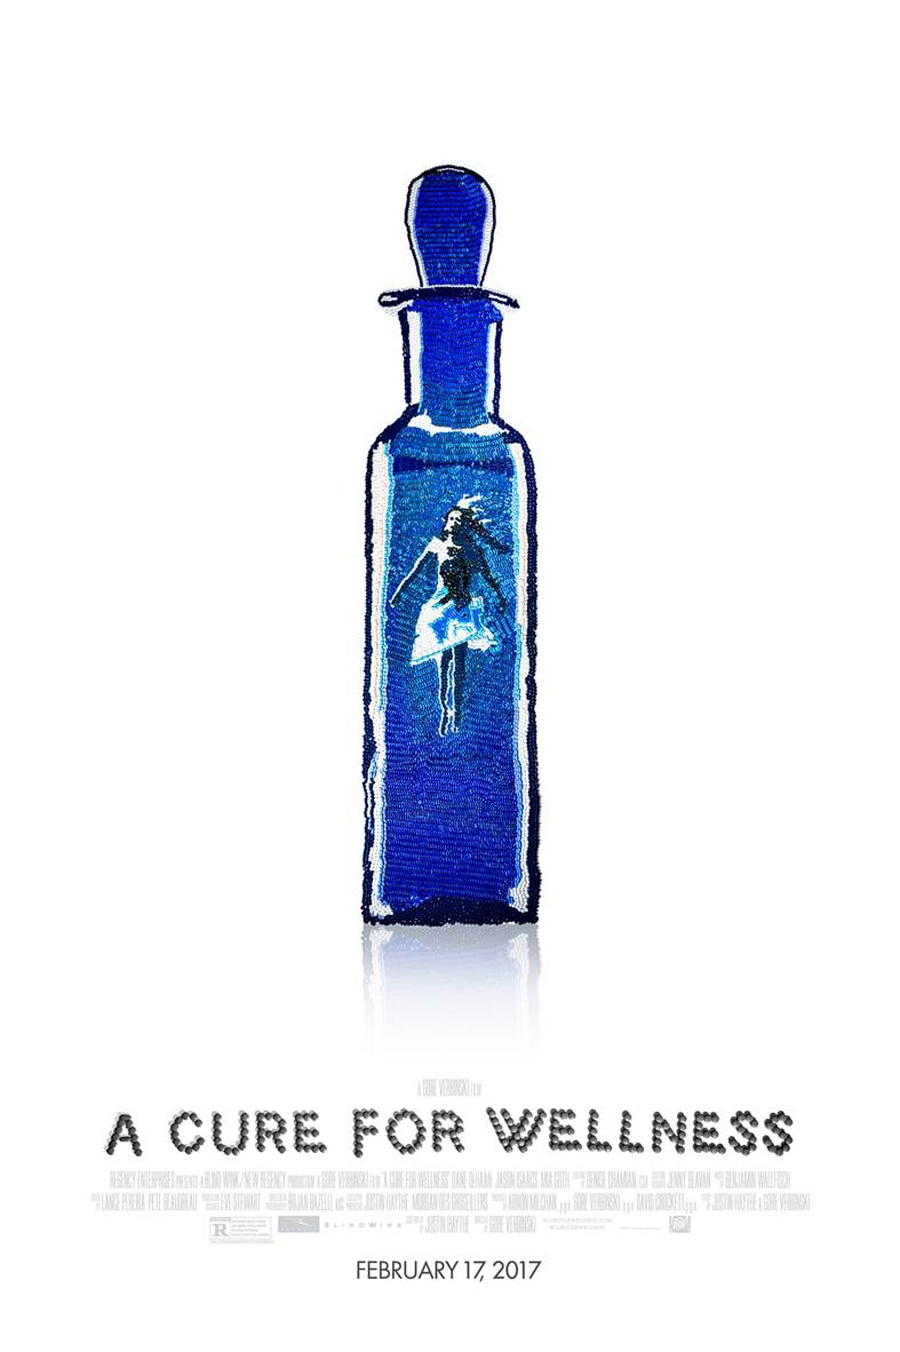 Cures Wellness